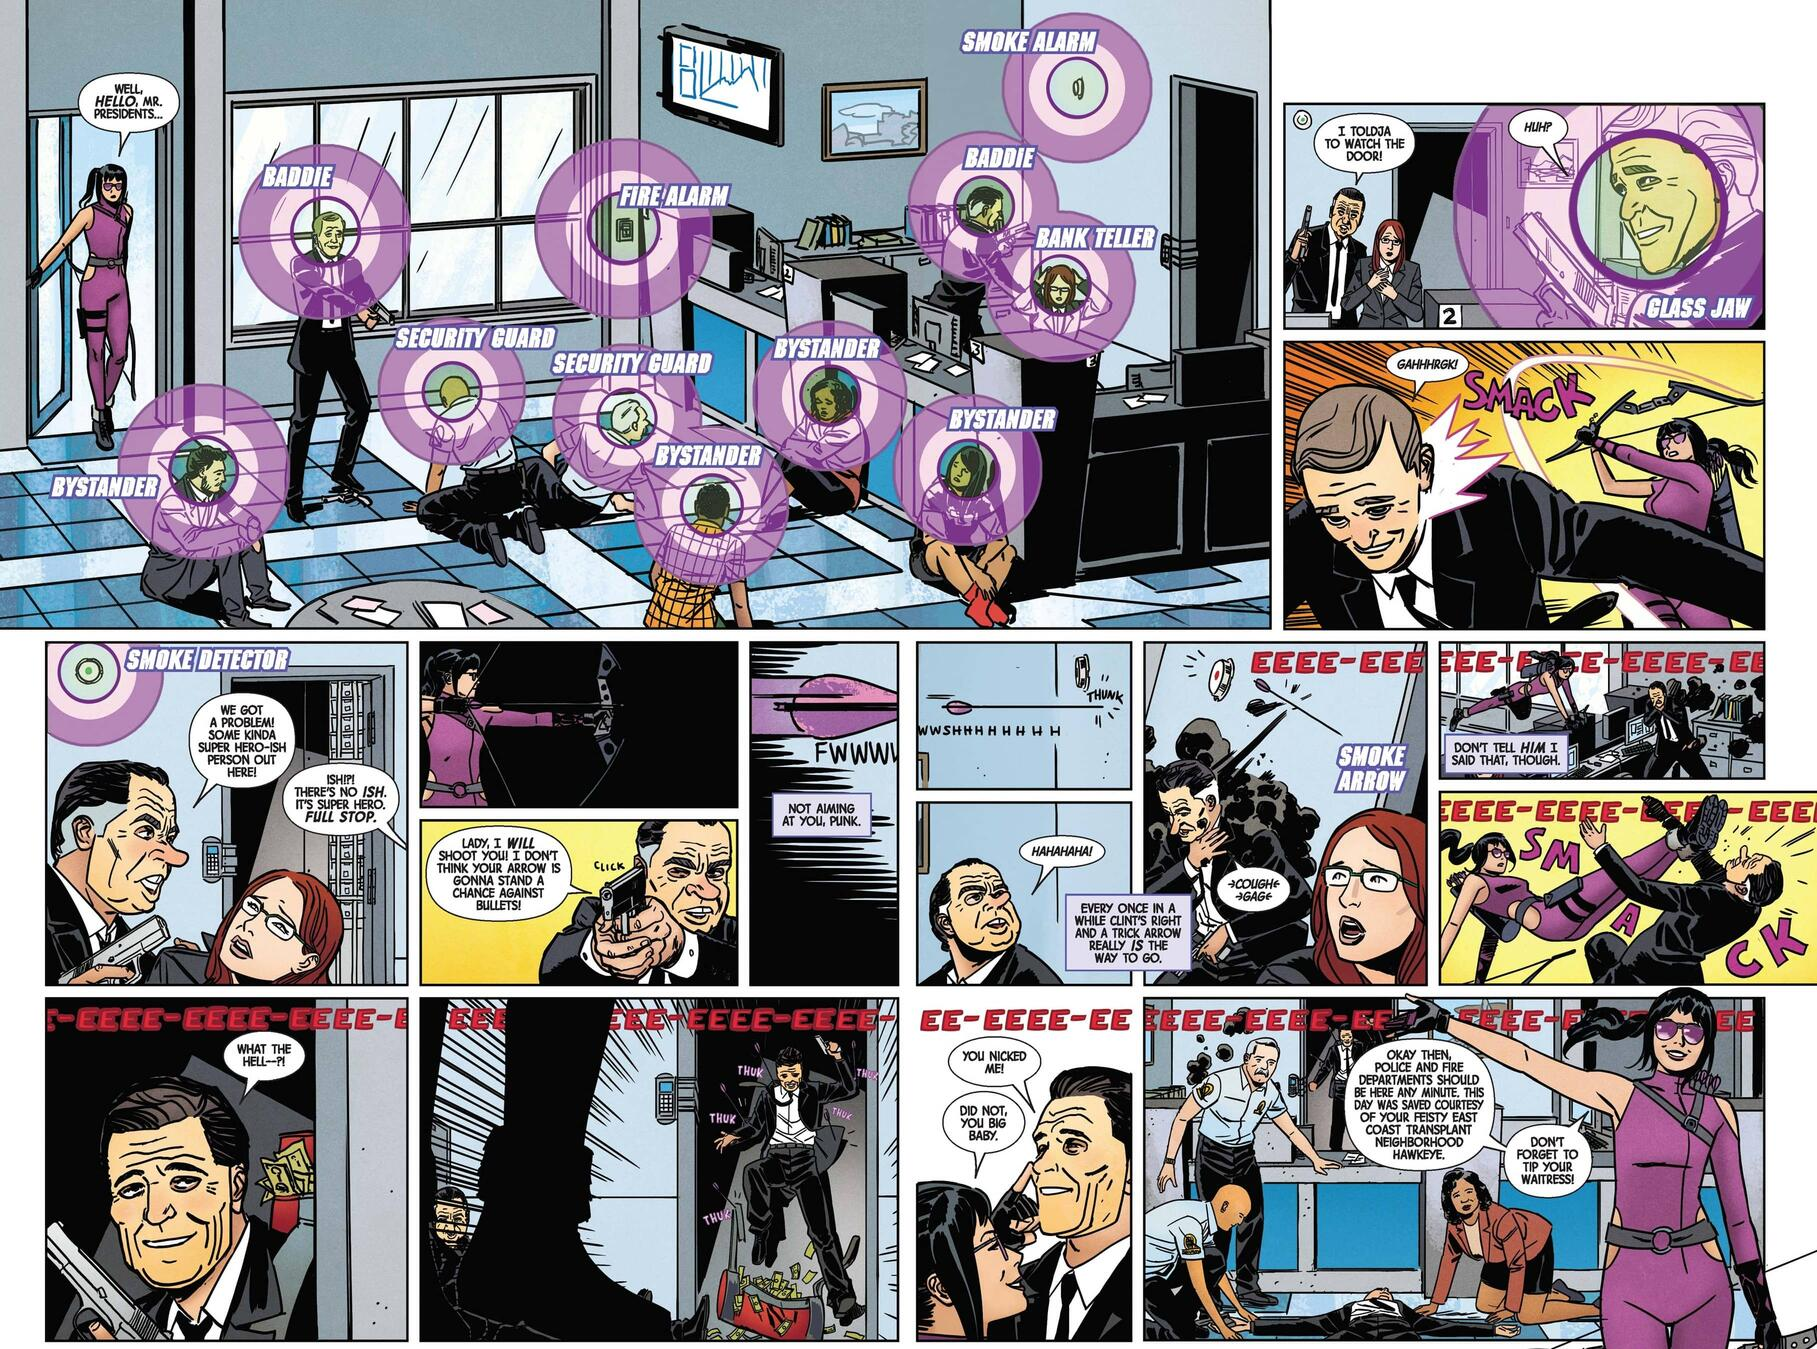 Kate cuts down crooks in styles from HAWKEYE (2016) #1.